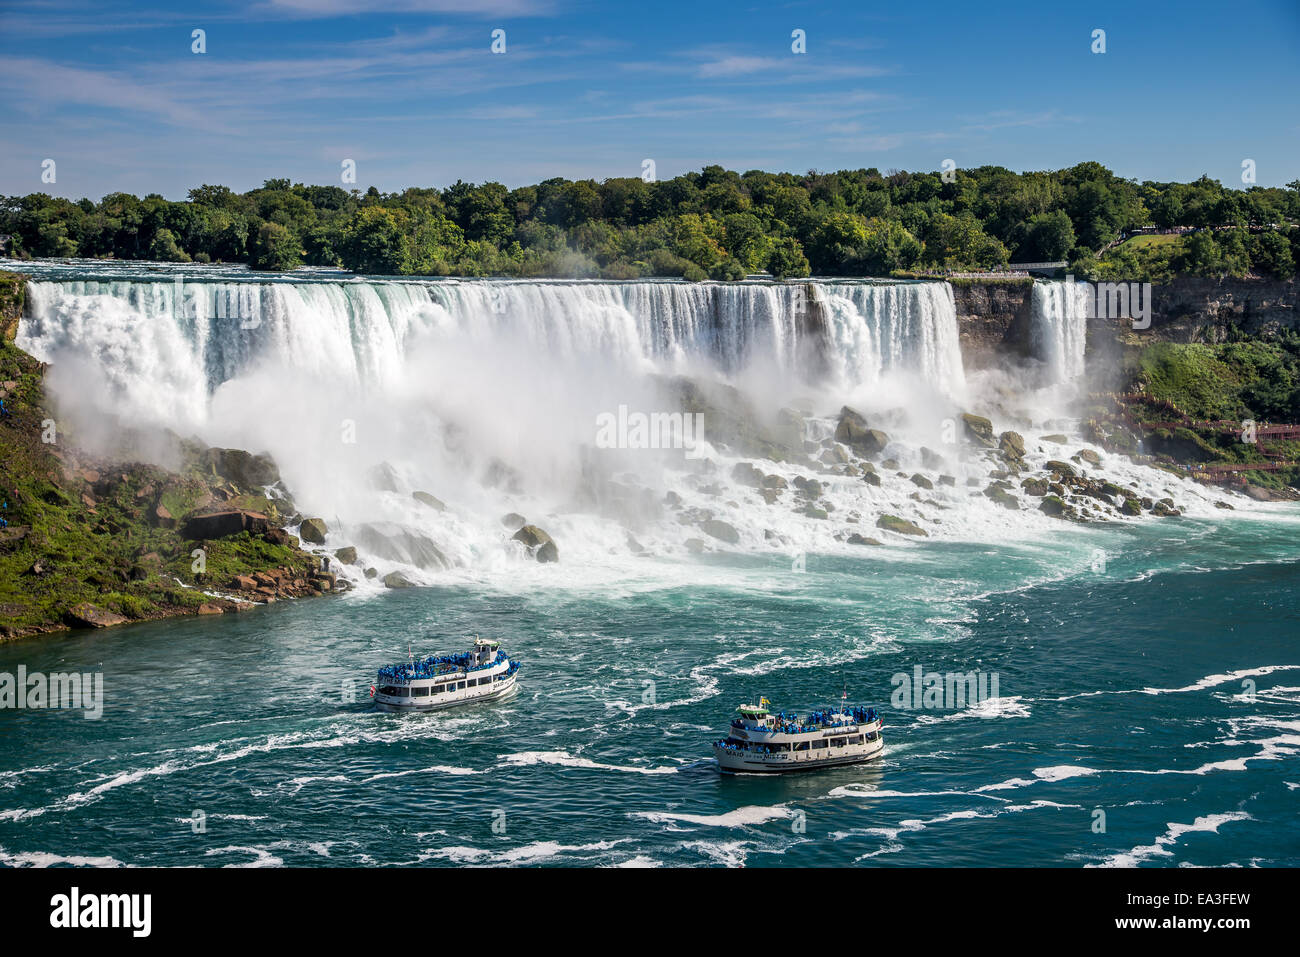 The American Falls with two tour boats at it's base as seen from Niagara Falls Canada. - Stock Image